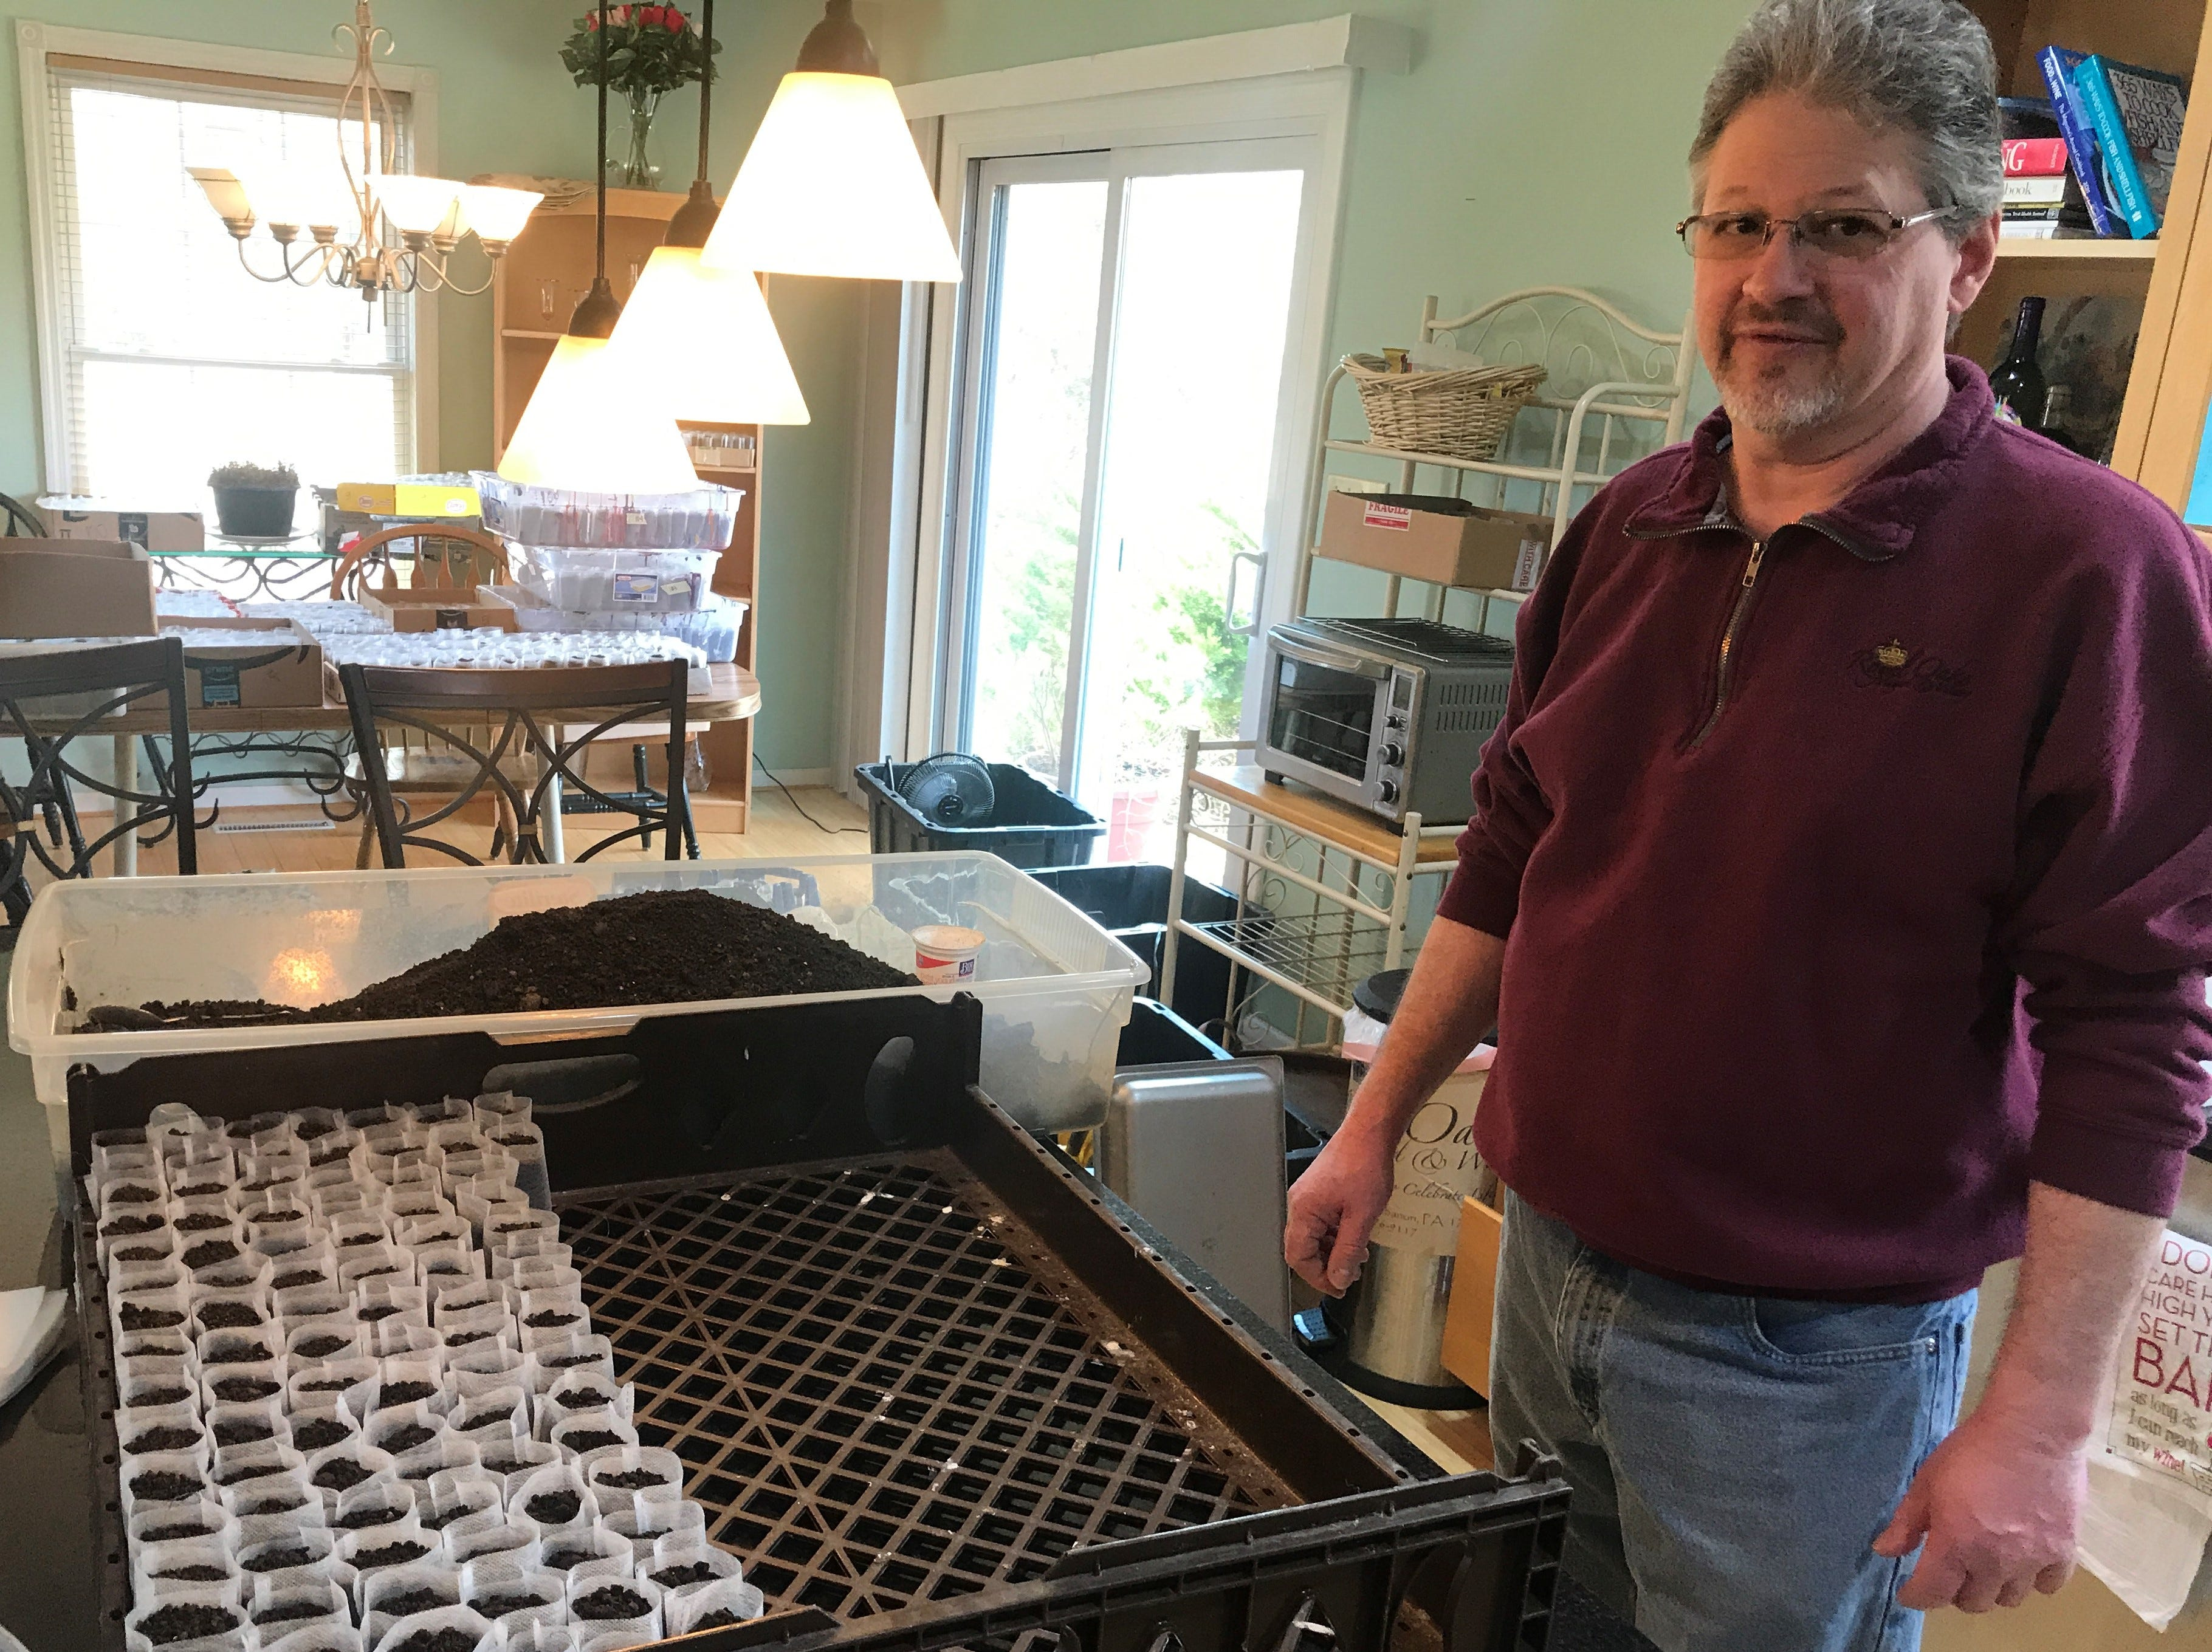 William Hartmann, owner of Royal Oaks vineyard and winery in North Cornwall Township, plans to grow these industrial hemp plants this year.